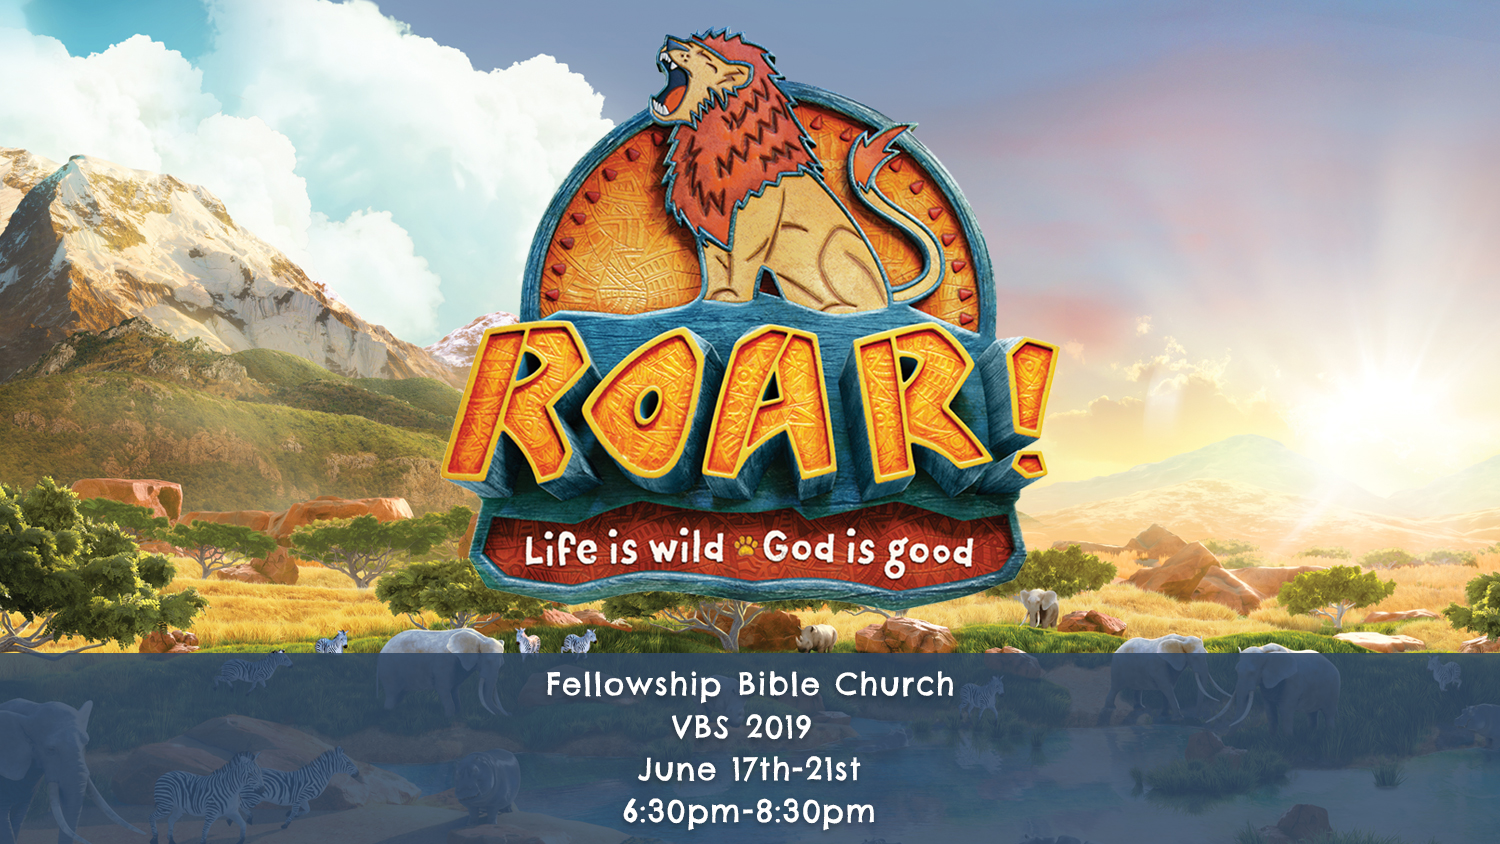 Church-Slides-VBS2019.jpg